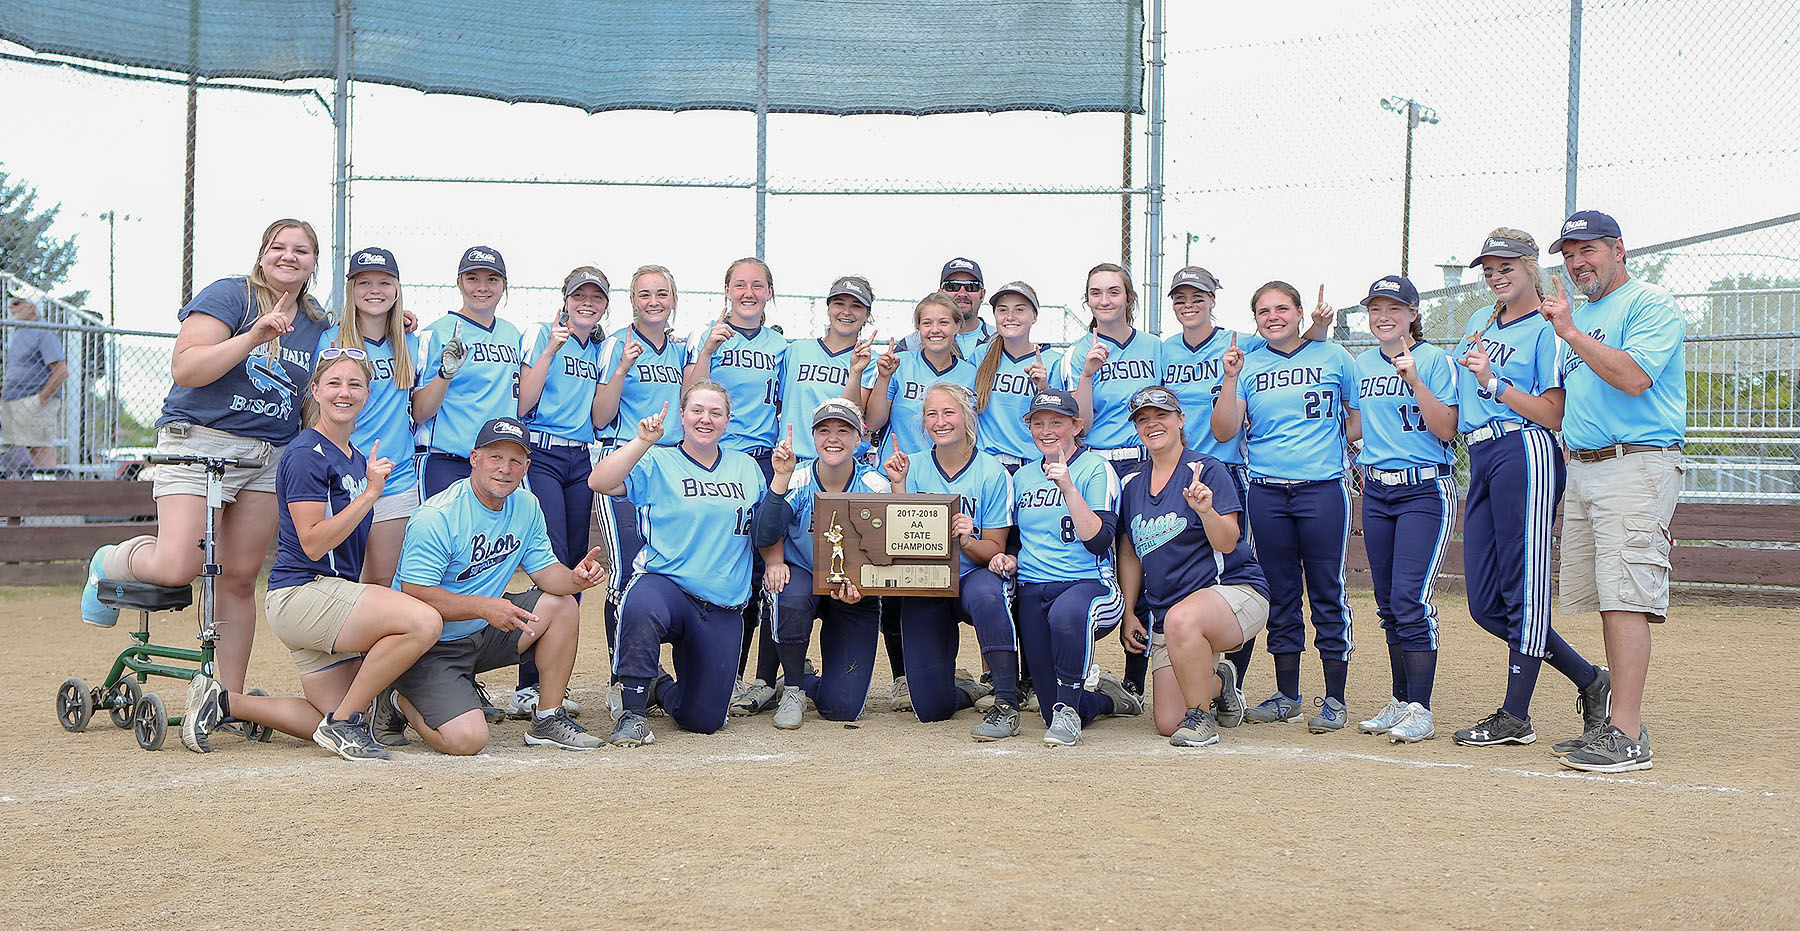 Great Falls High beats Missoula Sentinel 14-4 in finals for undefeated state softball championship